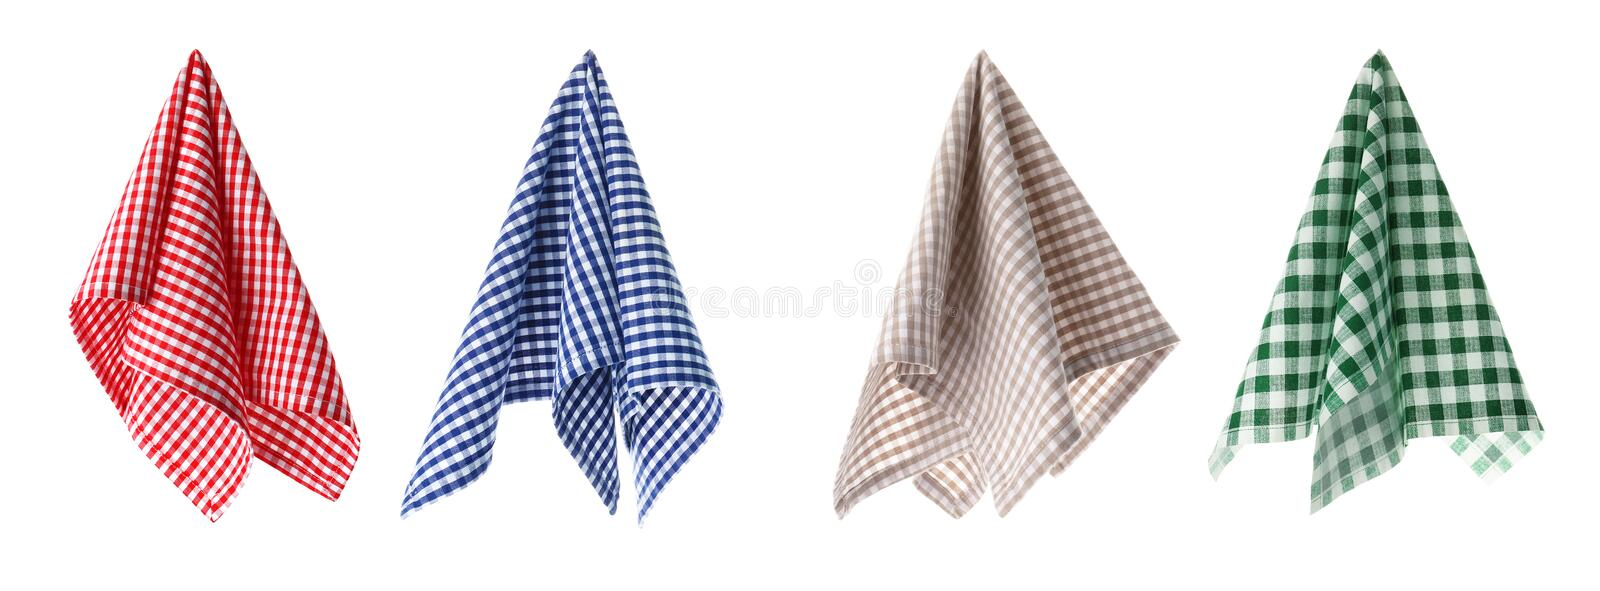 Set with different fabric napkins on white background royalty free stock photography